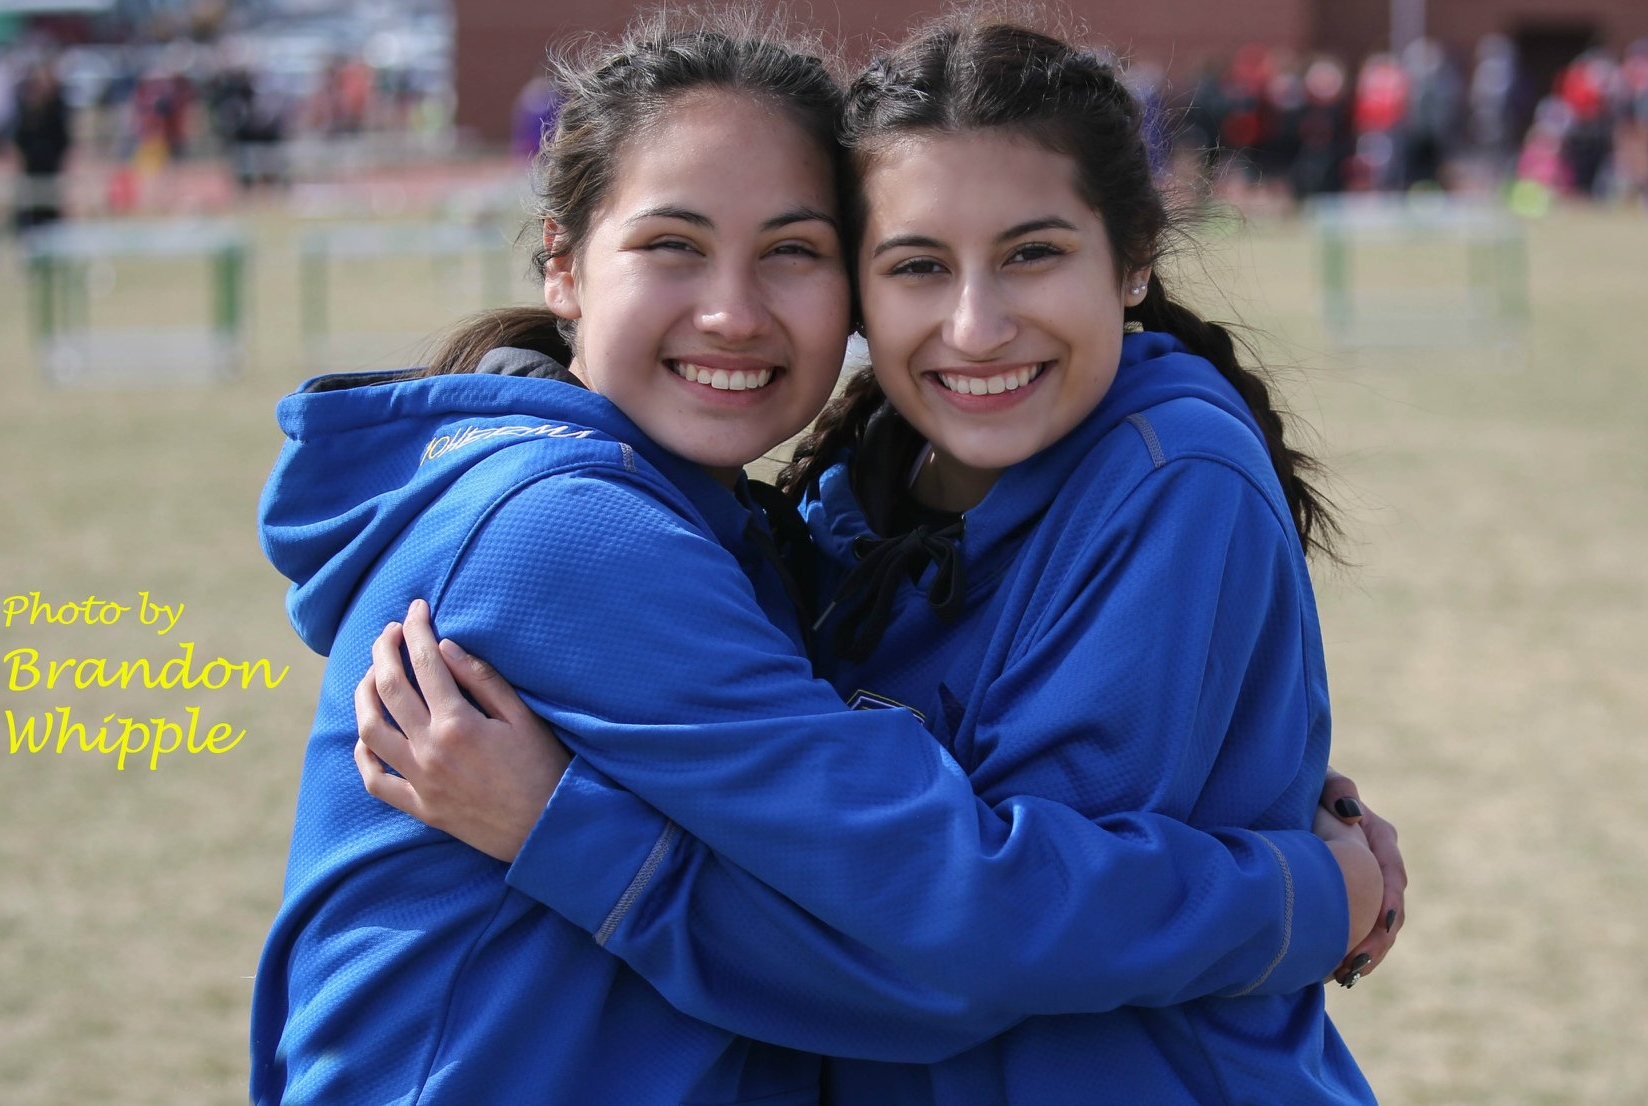 - During a Monday evening interview, TC Track coach Bob Kornely said he was extremely pleased with Kelsie Herman and Raven Cournoyer in Pierre. Herman ran a 12:32, 3200 meters (Kornely said that is far ahead of her pace at this time of year) and a 5:48, 1600. Raven Cournoyer, still battling a sore foot, ran a 2:36 800 meters. Both are working into shape running a variety of events.